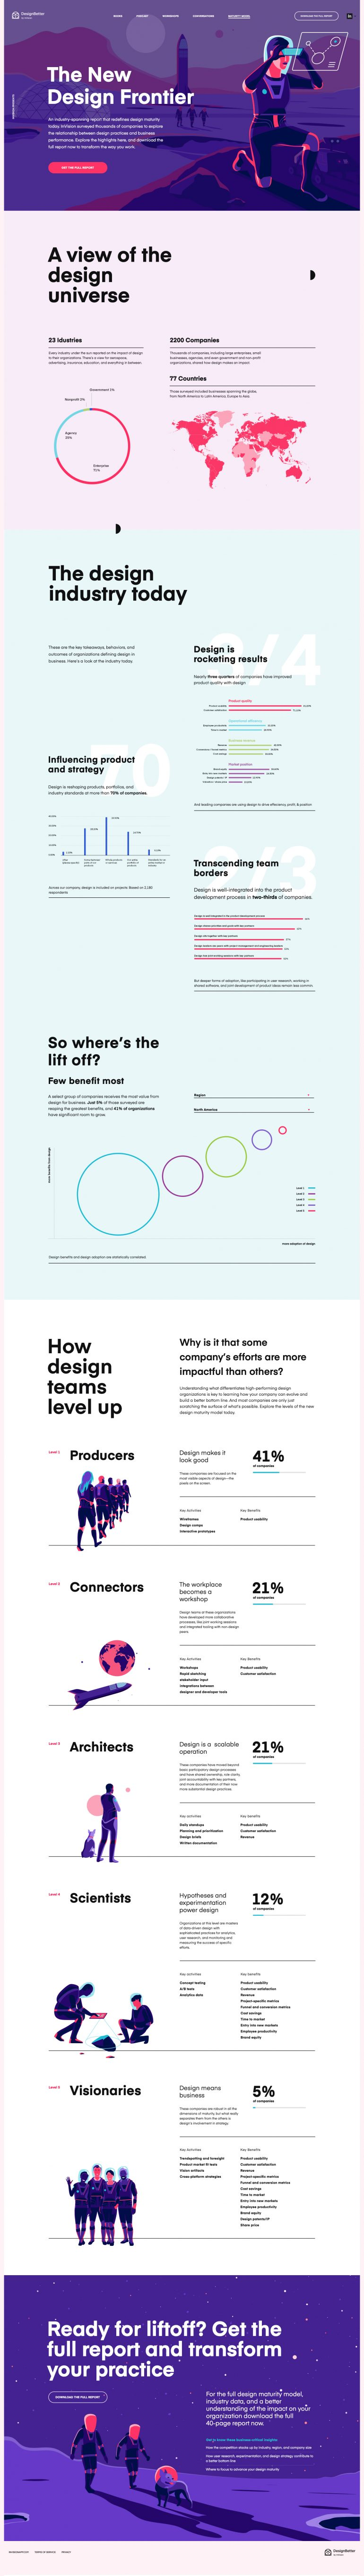 InVision – The New Design Frontier by Elegant Seagulls